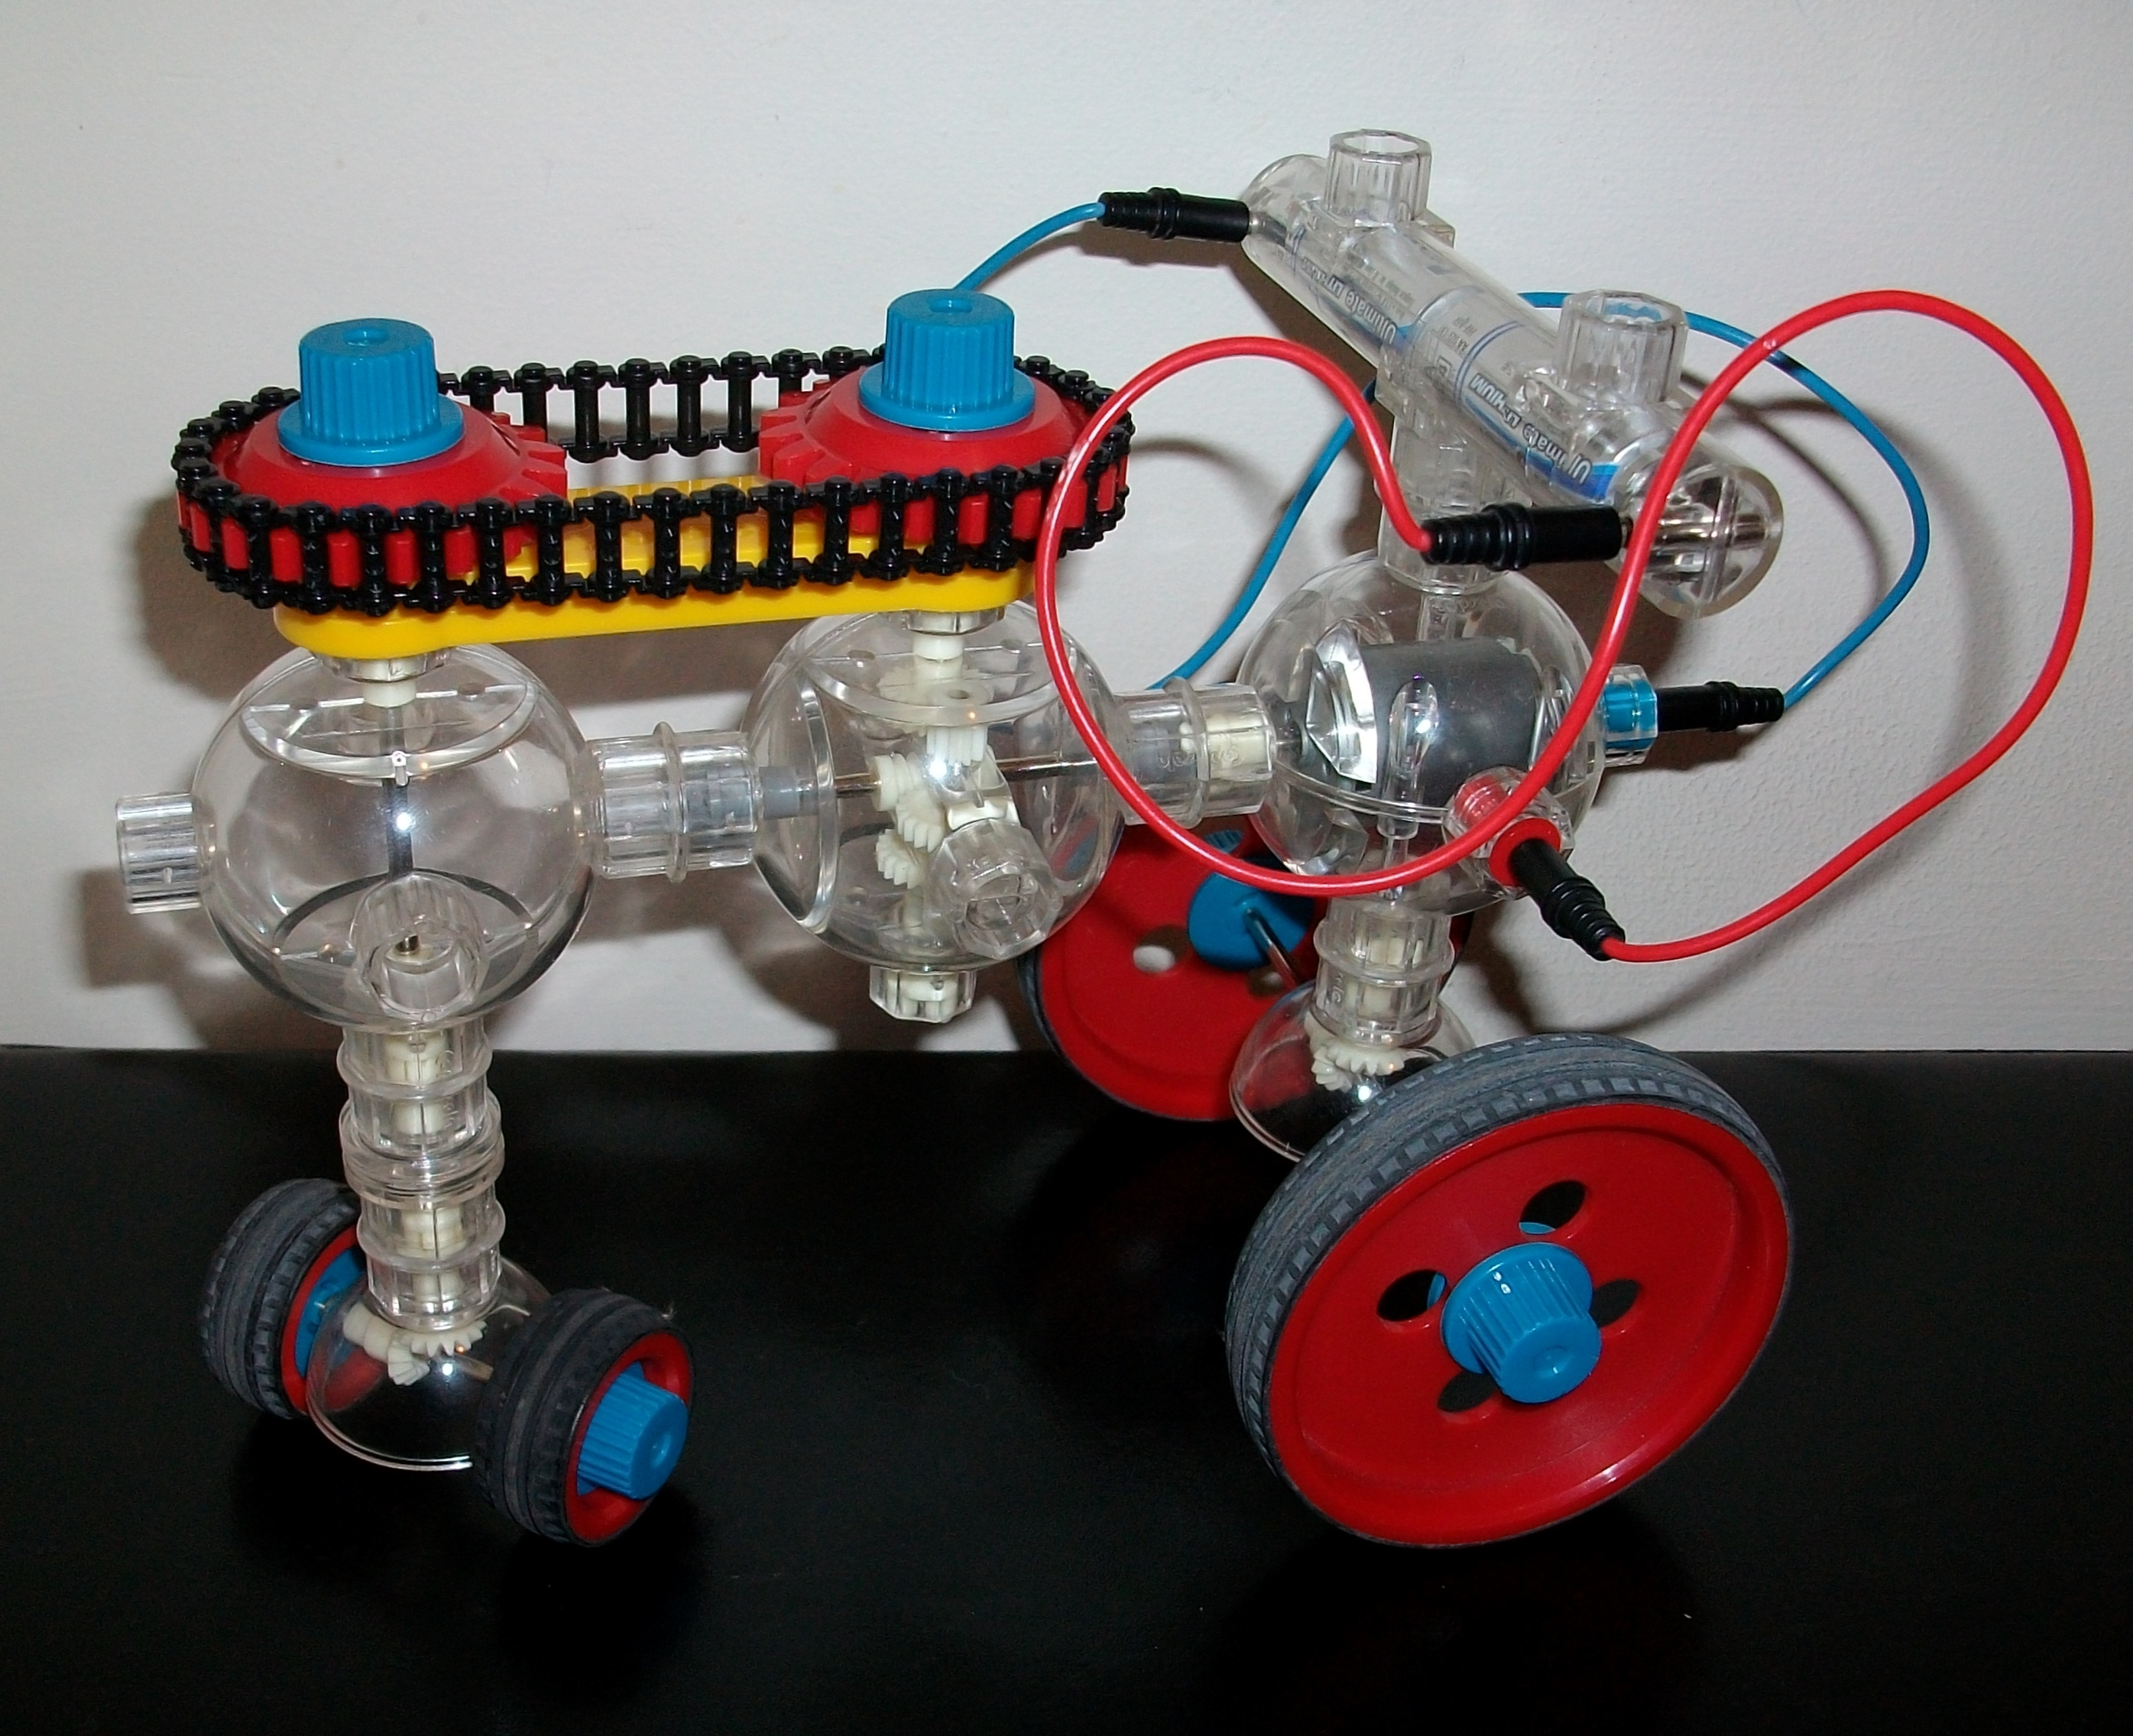 adafruit_products_Capsela_model_with_swivel.jpg